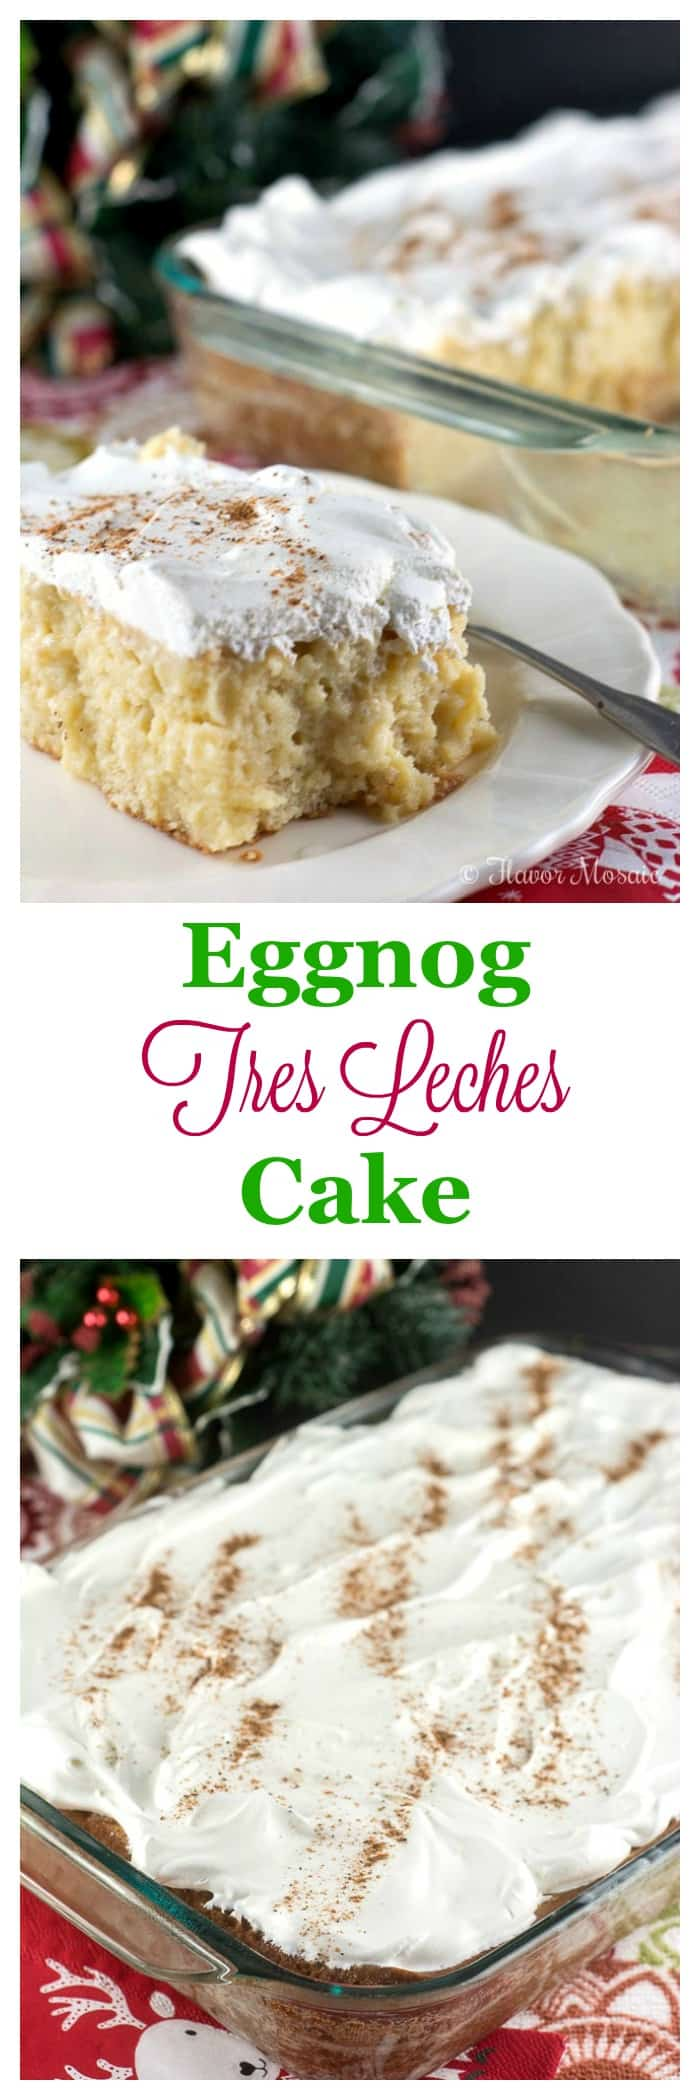 Eggnog Tres Leches Cake makes a wonderful Christmas or holiday dessert.